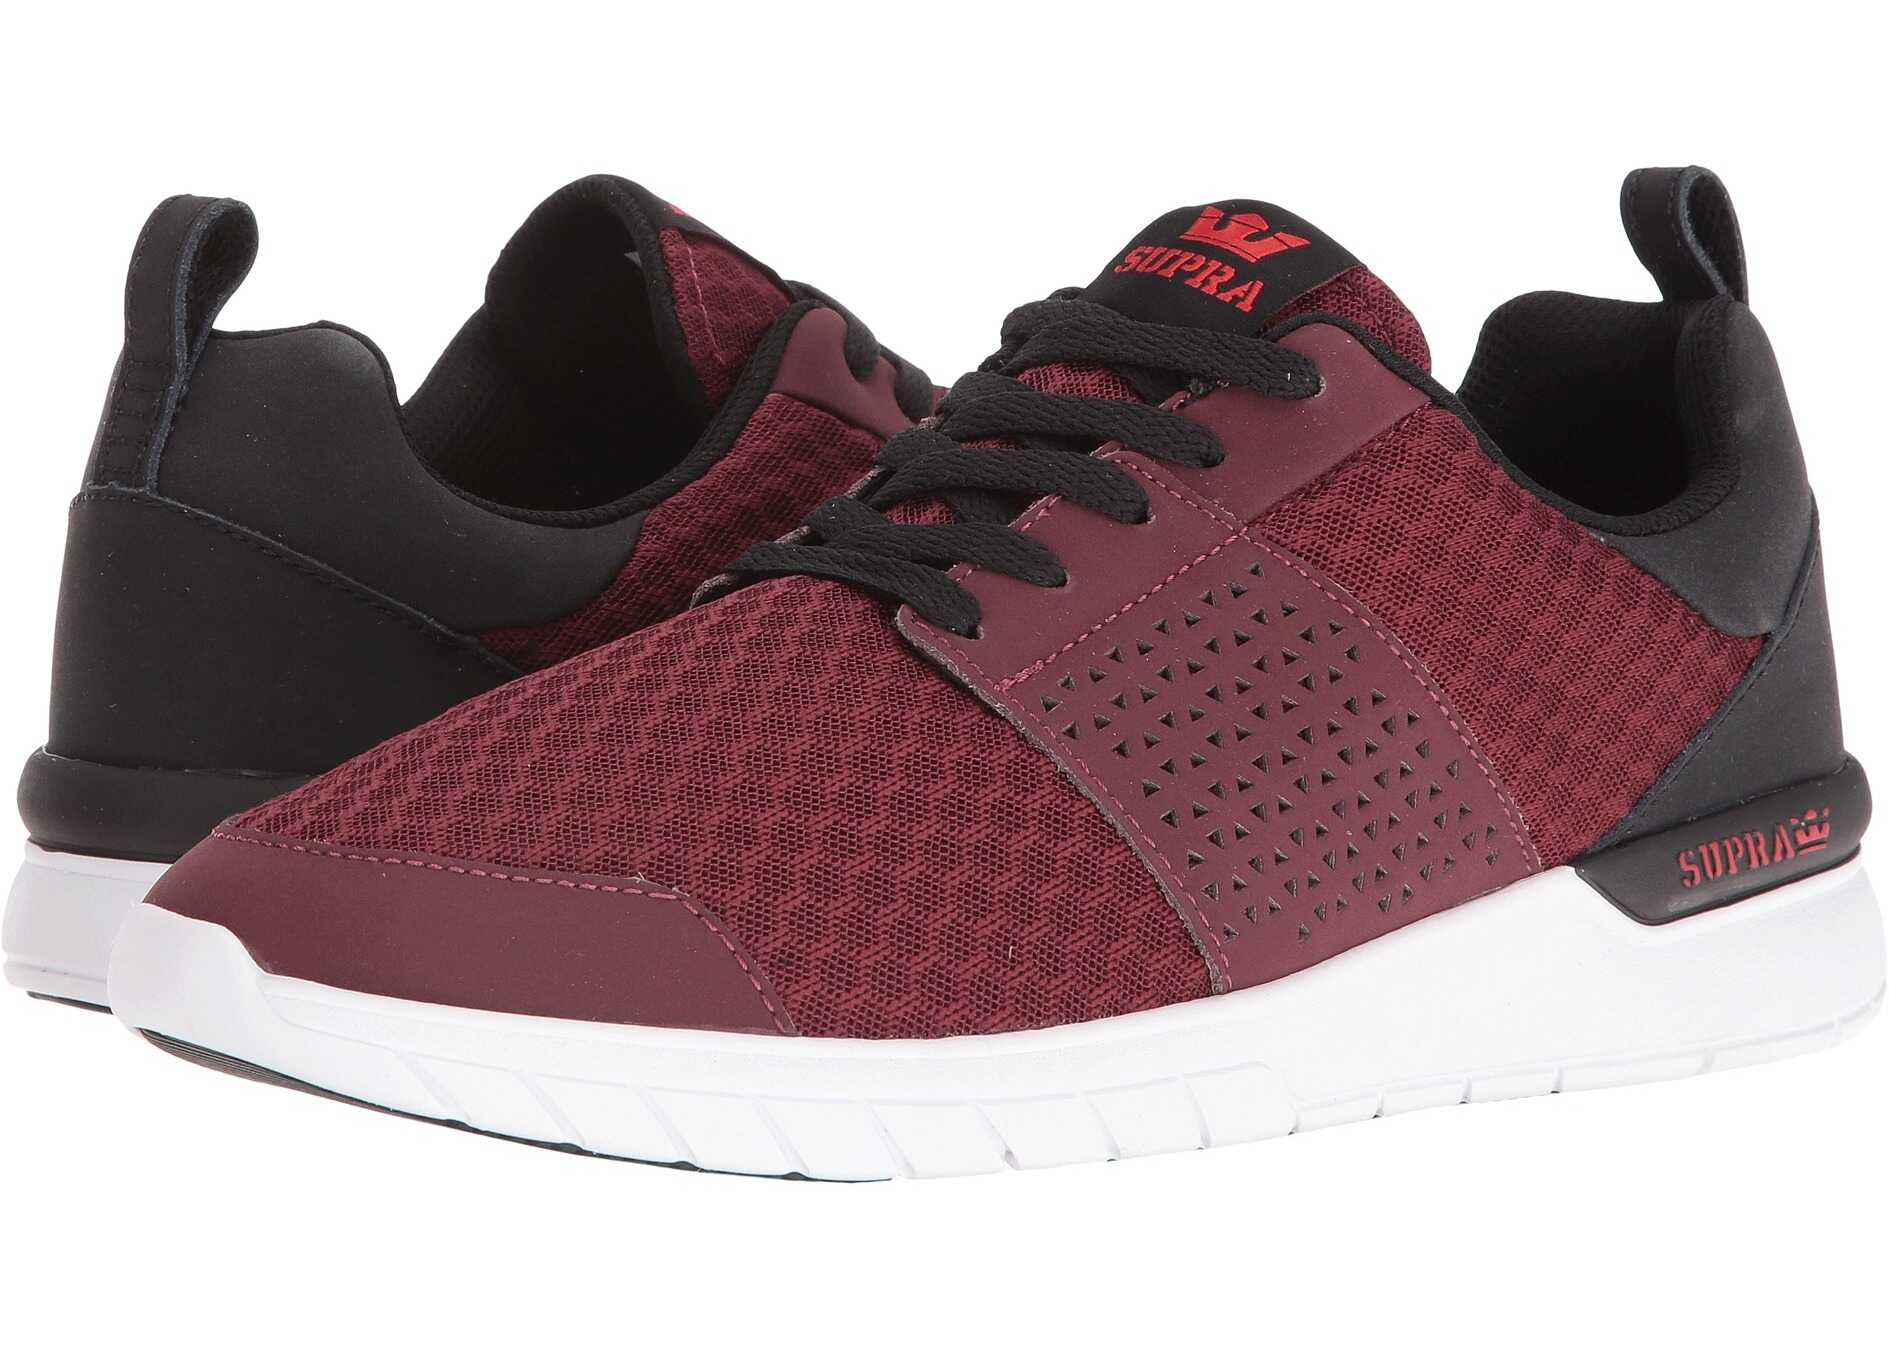 Supra Scissor Burgundy/Black/White